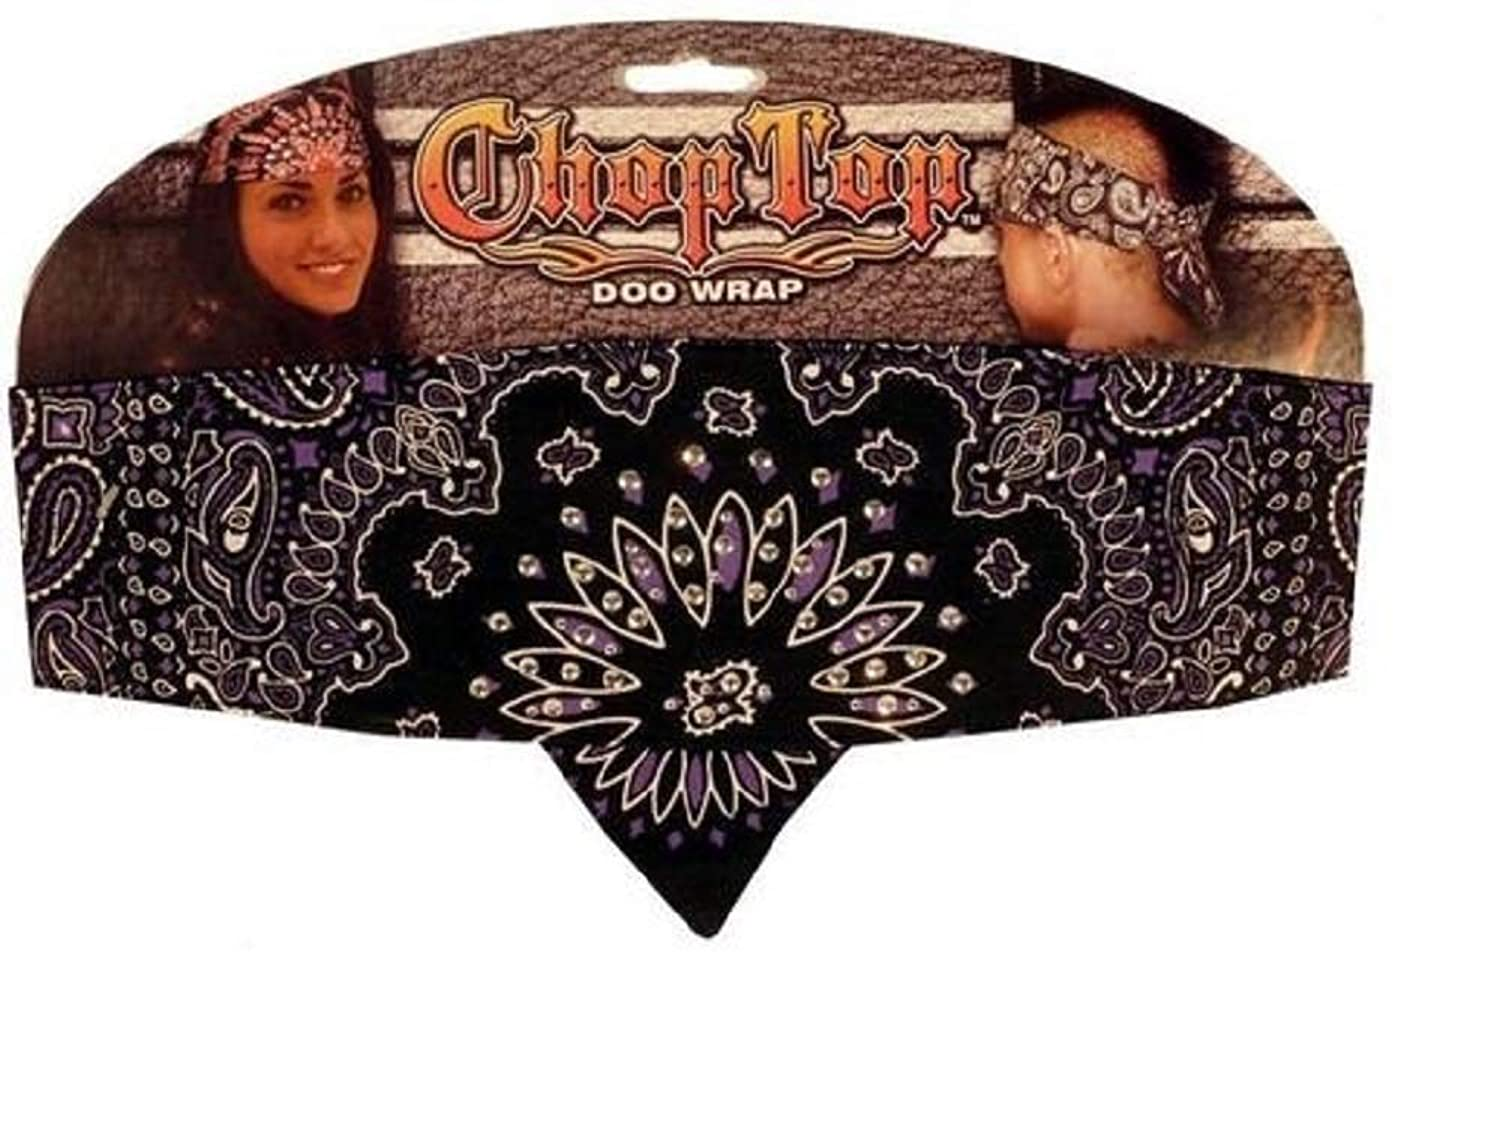 Black and Purple Paisley with Rhinestones Chop Top Biker Bandanna Style Headbands Head Wrap Adjustable with Sweatband ehhzwi1084130